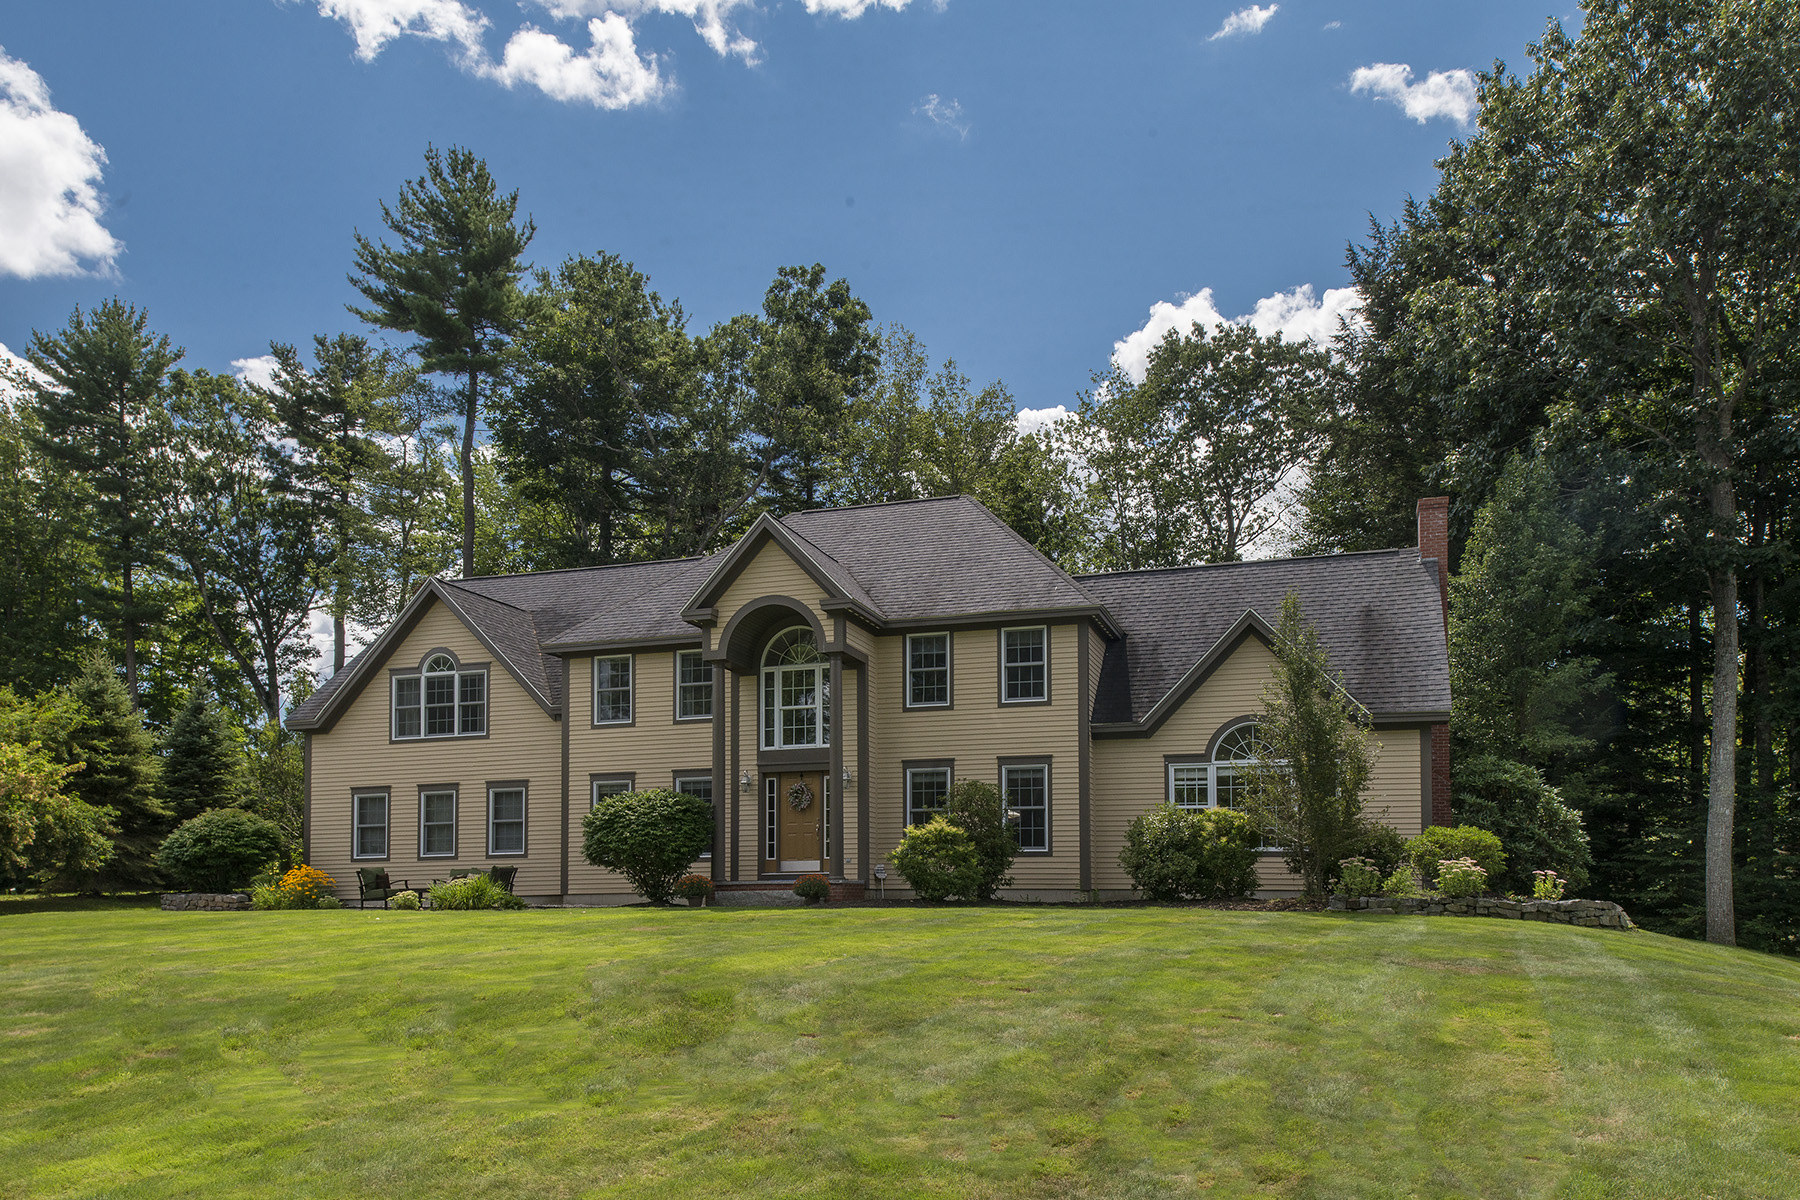 Single Family Home for Sale at 30 Surrey Lane Falmouth, Maine 04105 United States